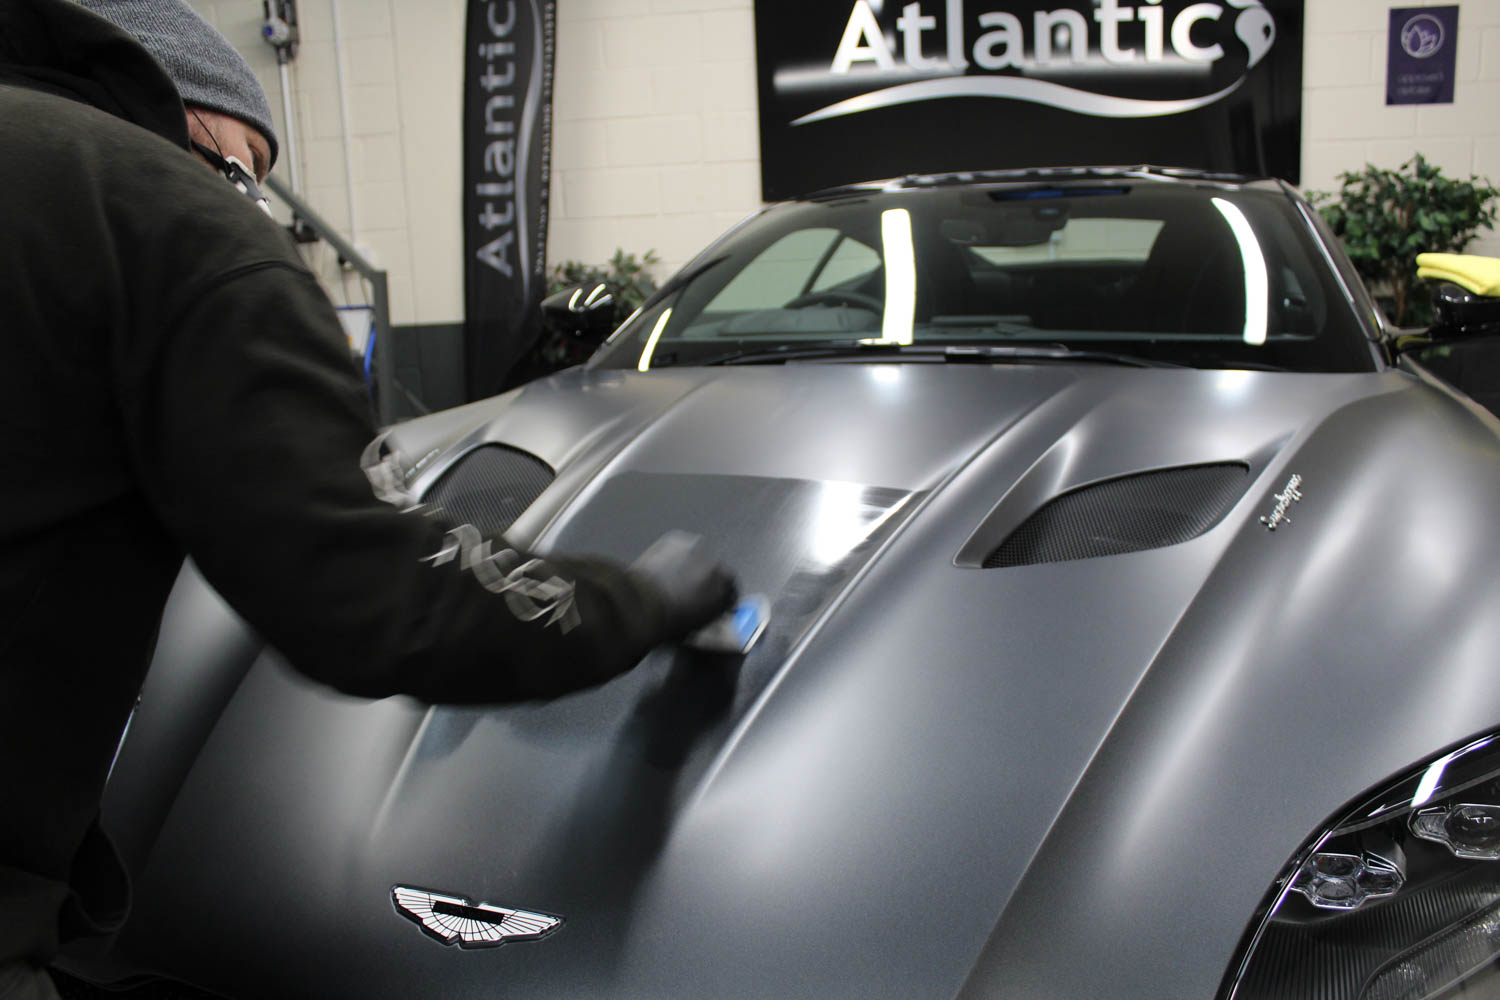 Atlantic Car Valeting